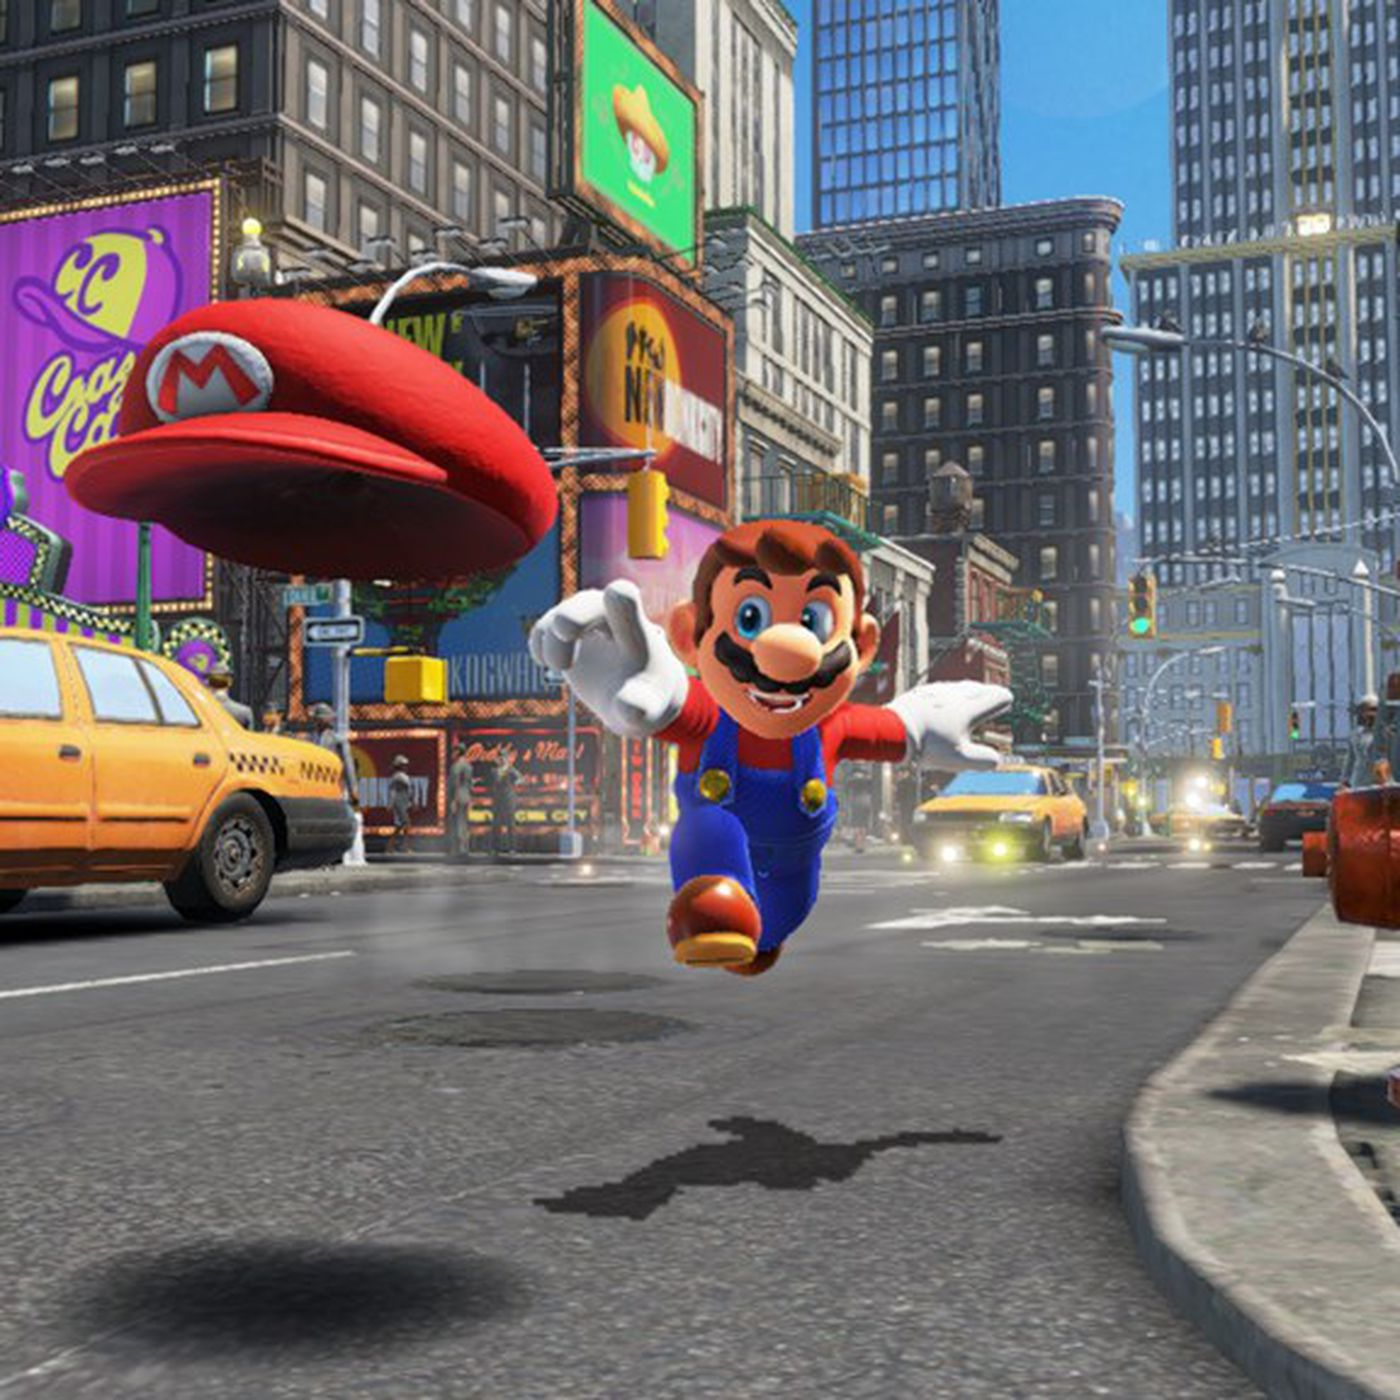 Marios Used Cars Luxury Super Mario Odyssey is Big Plex and Surprisingly Hard the Verge